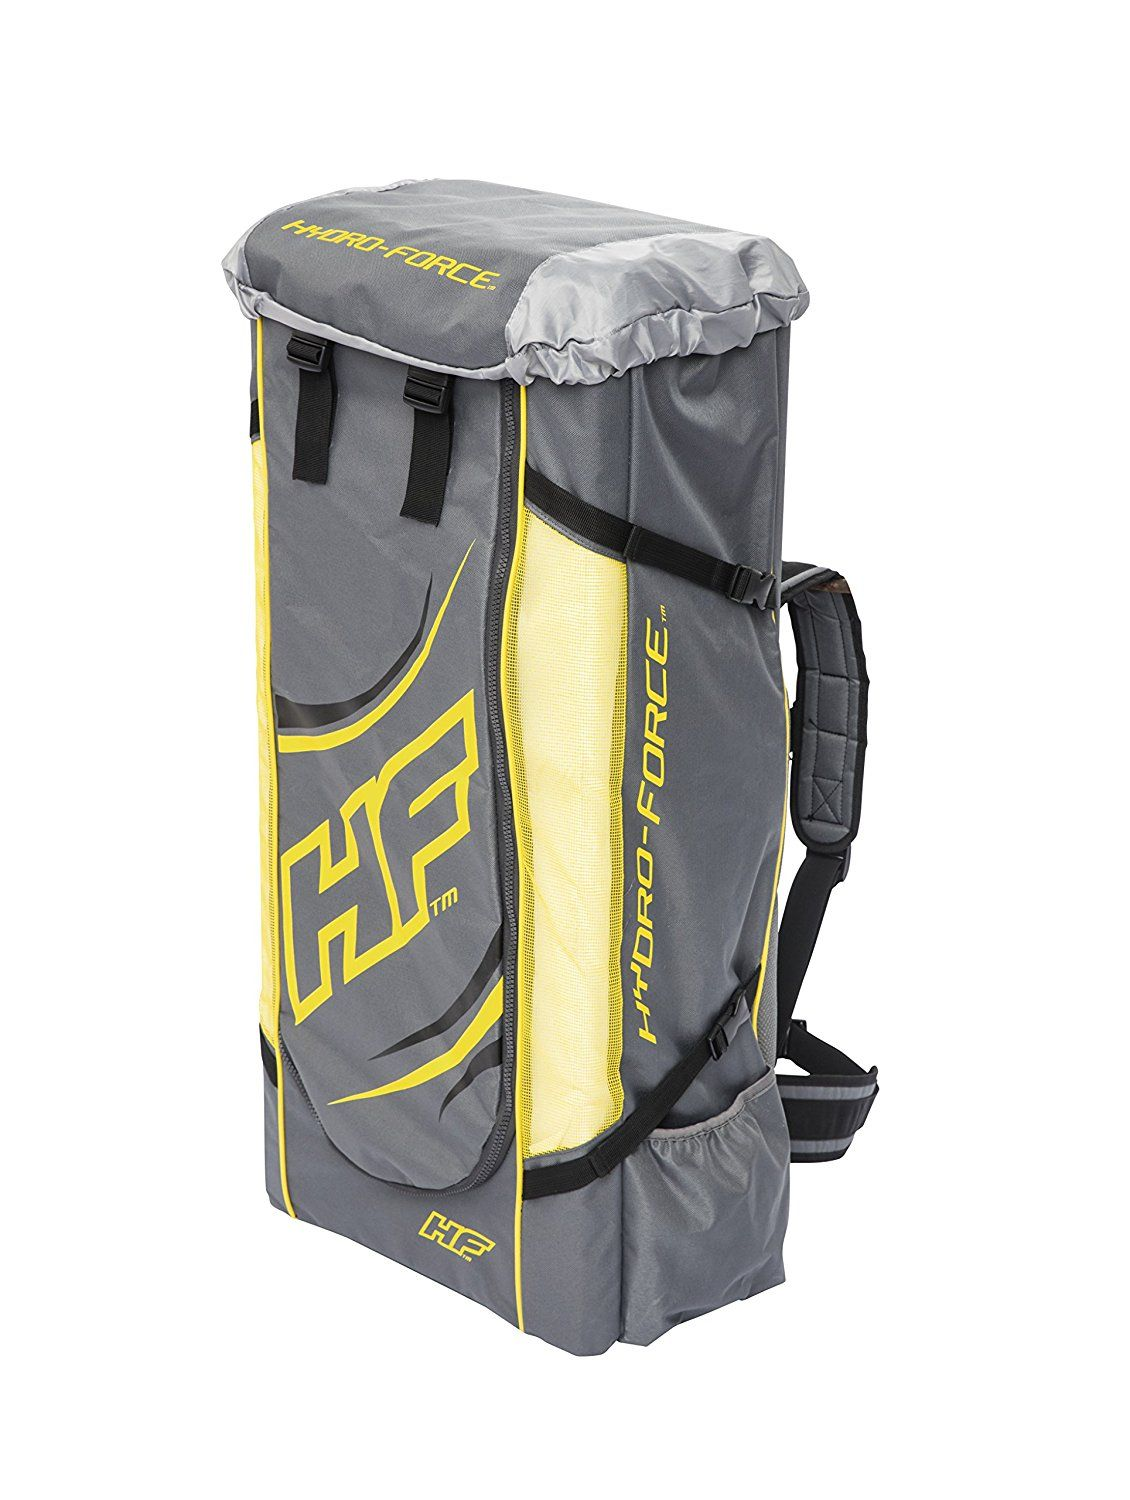 TABLA SUP HINCHABLE-CHOLLO AMAZON MOCHILA